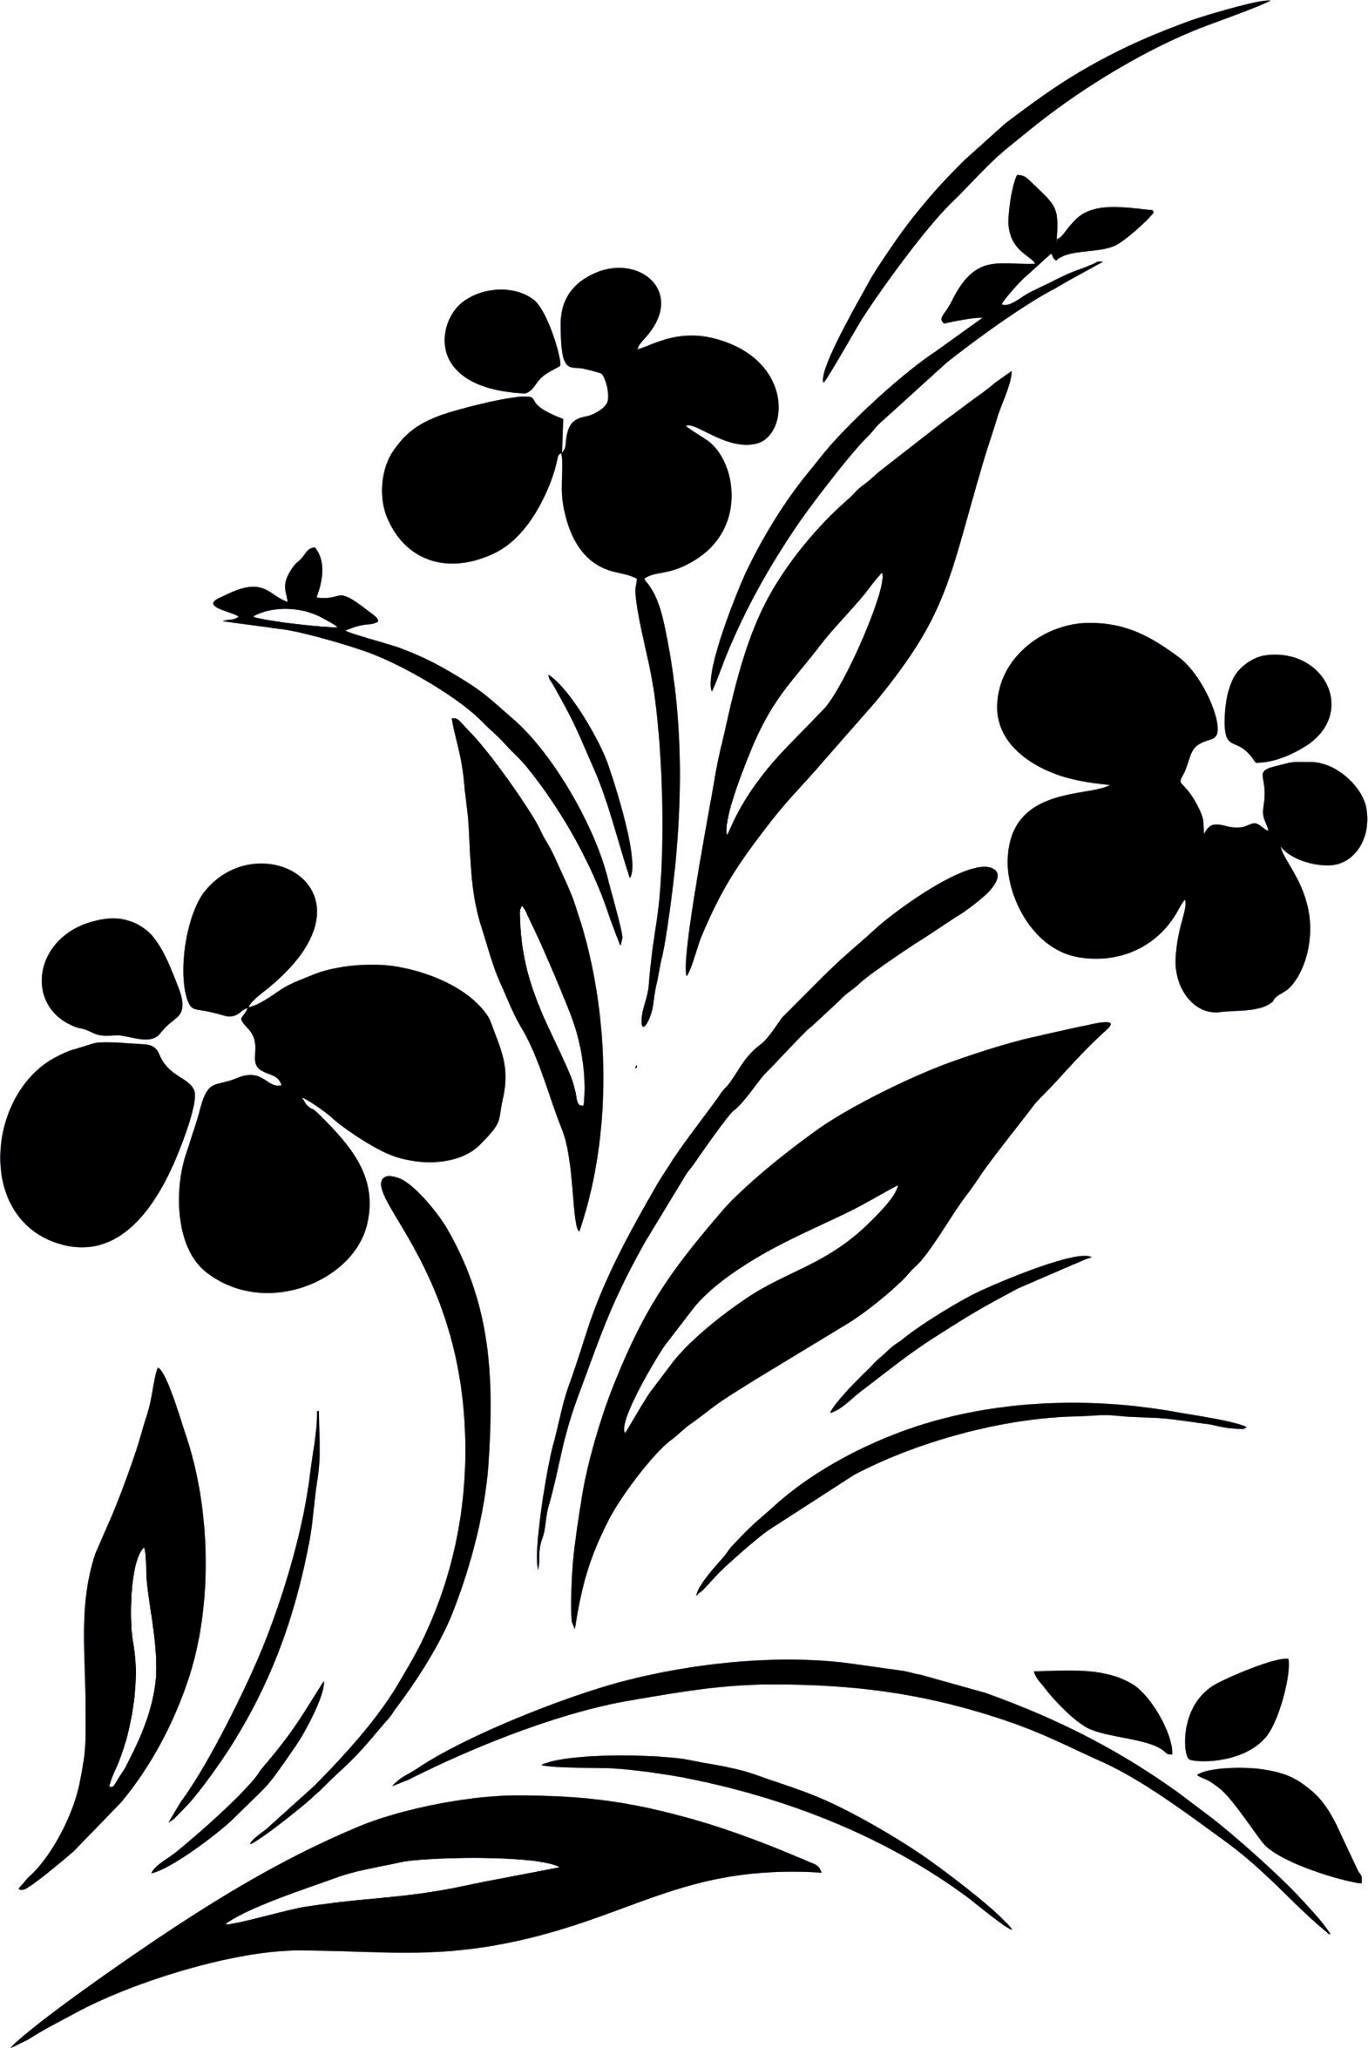 Black And White Art Ideas Simple Flower Designs Black And White Vector Art Jpg Image